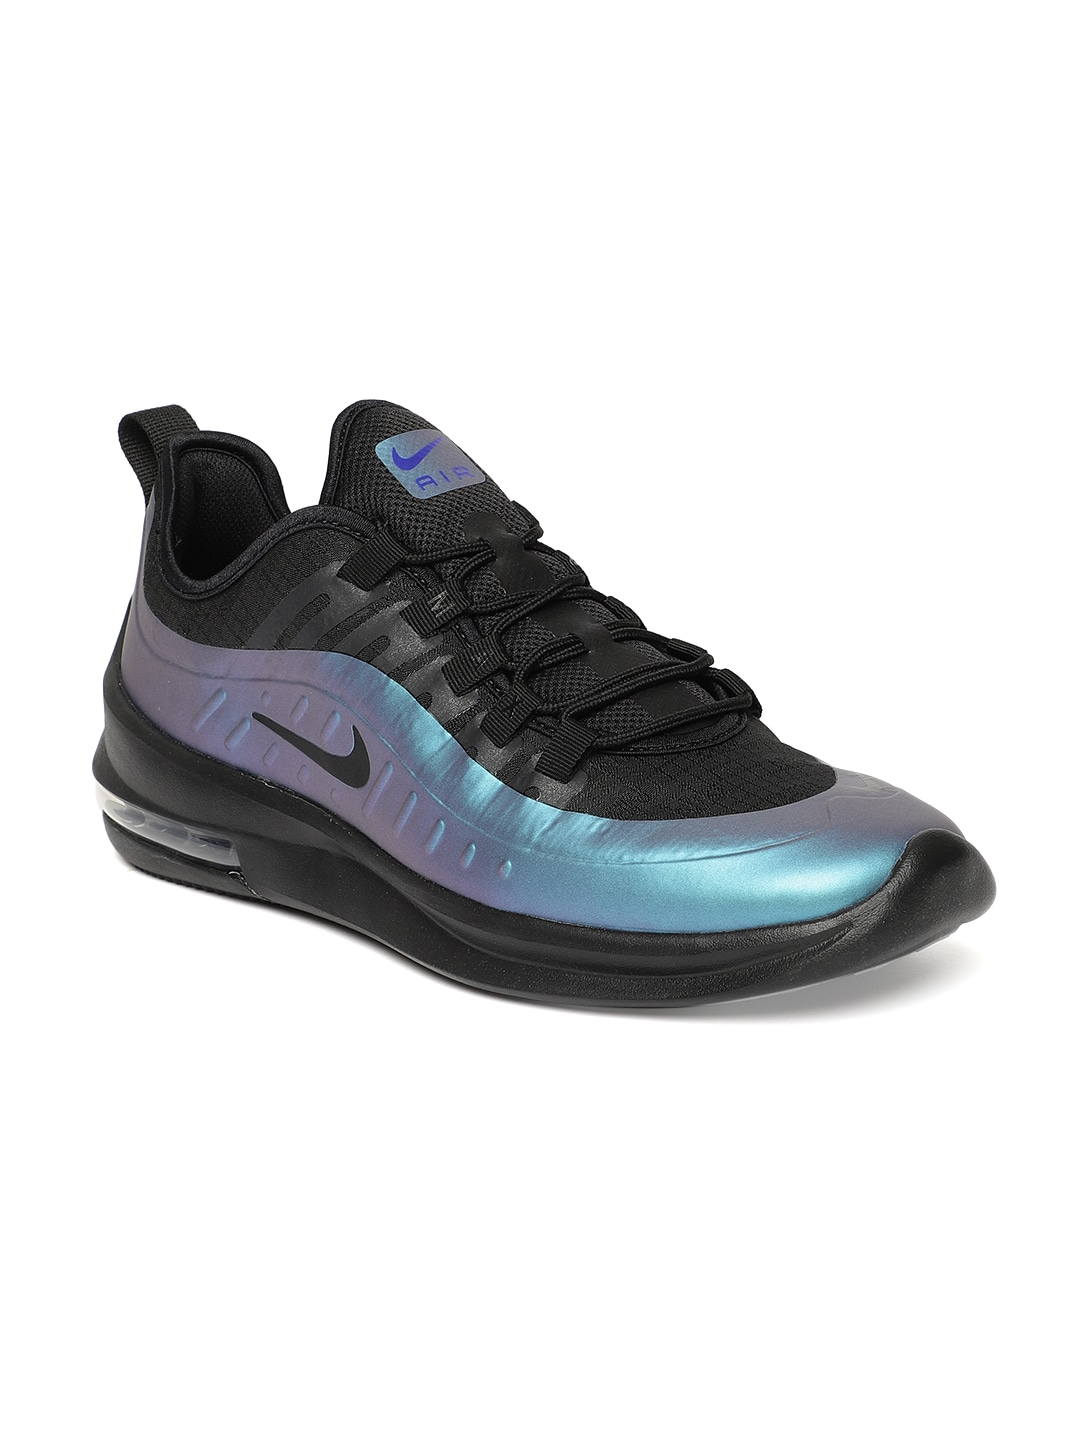 4cd809385e99 Nike Shoes - Buy Nike Shoes for Men